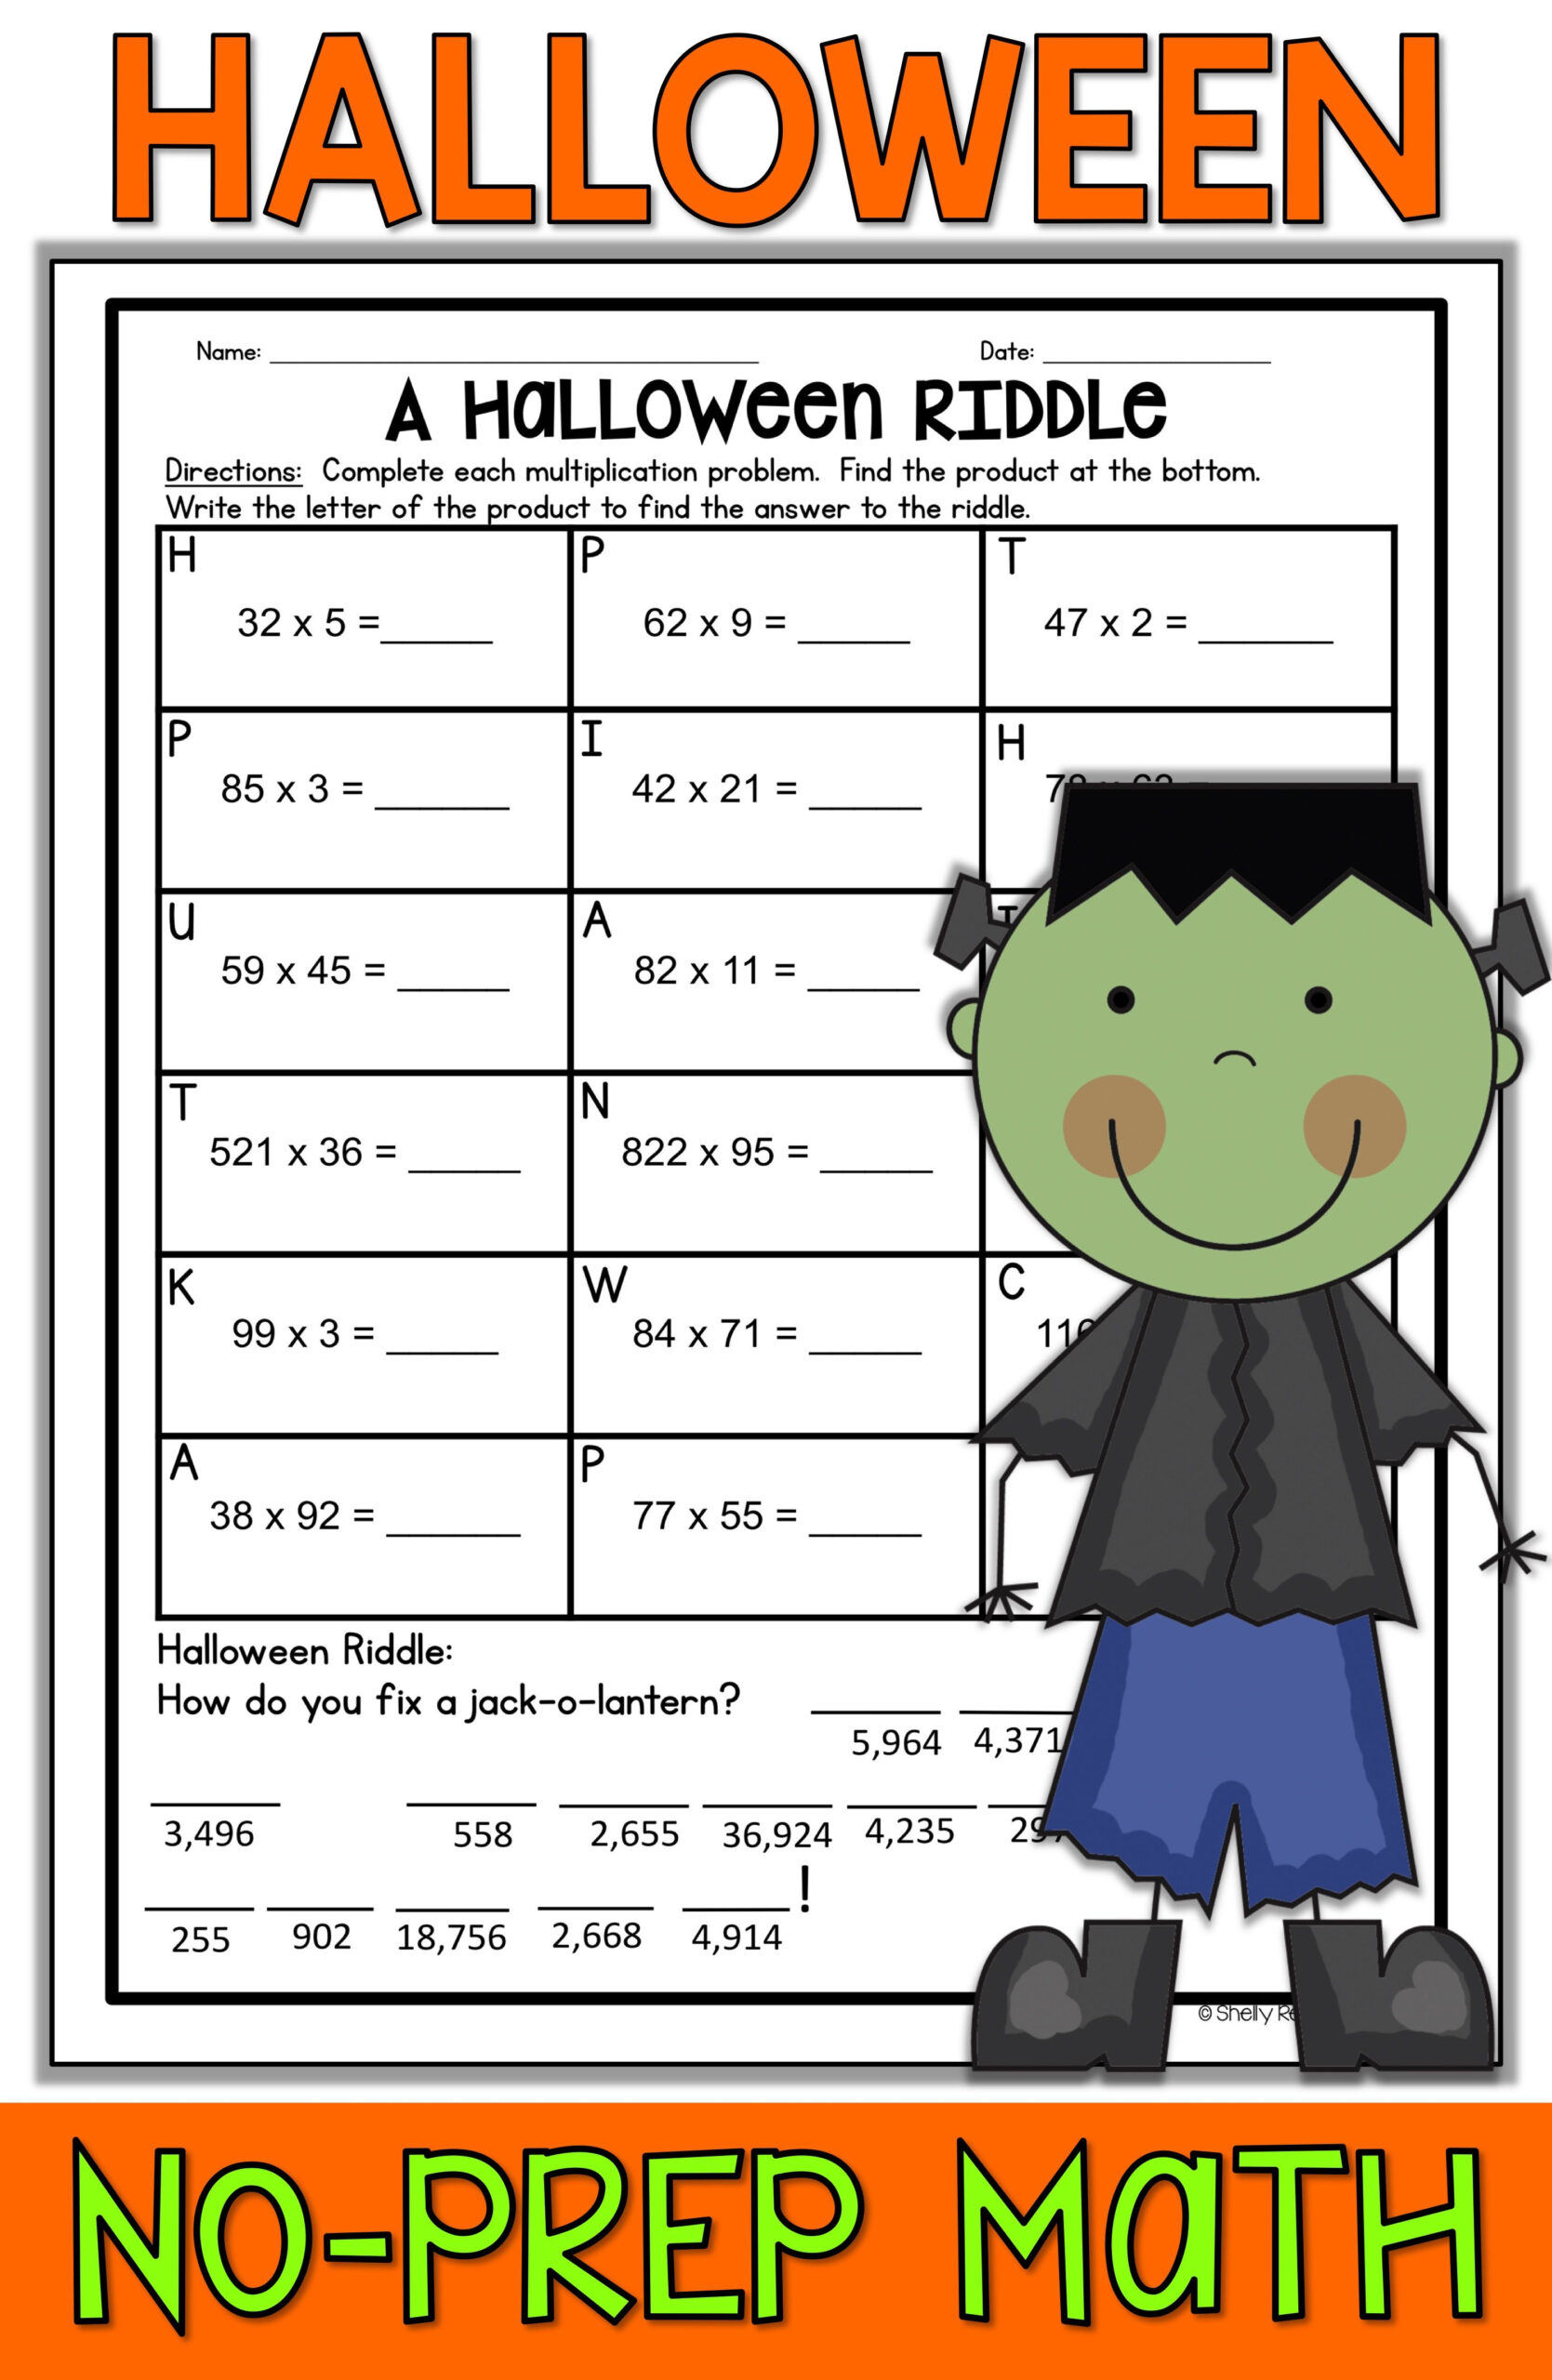 500+ Halloween Worksheets - Elementary Ideas In 2020